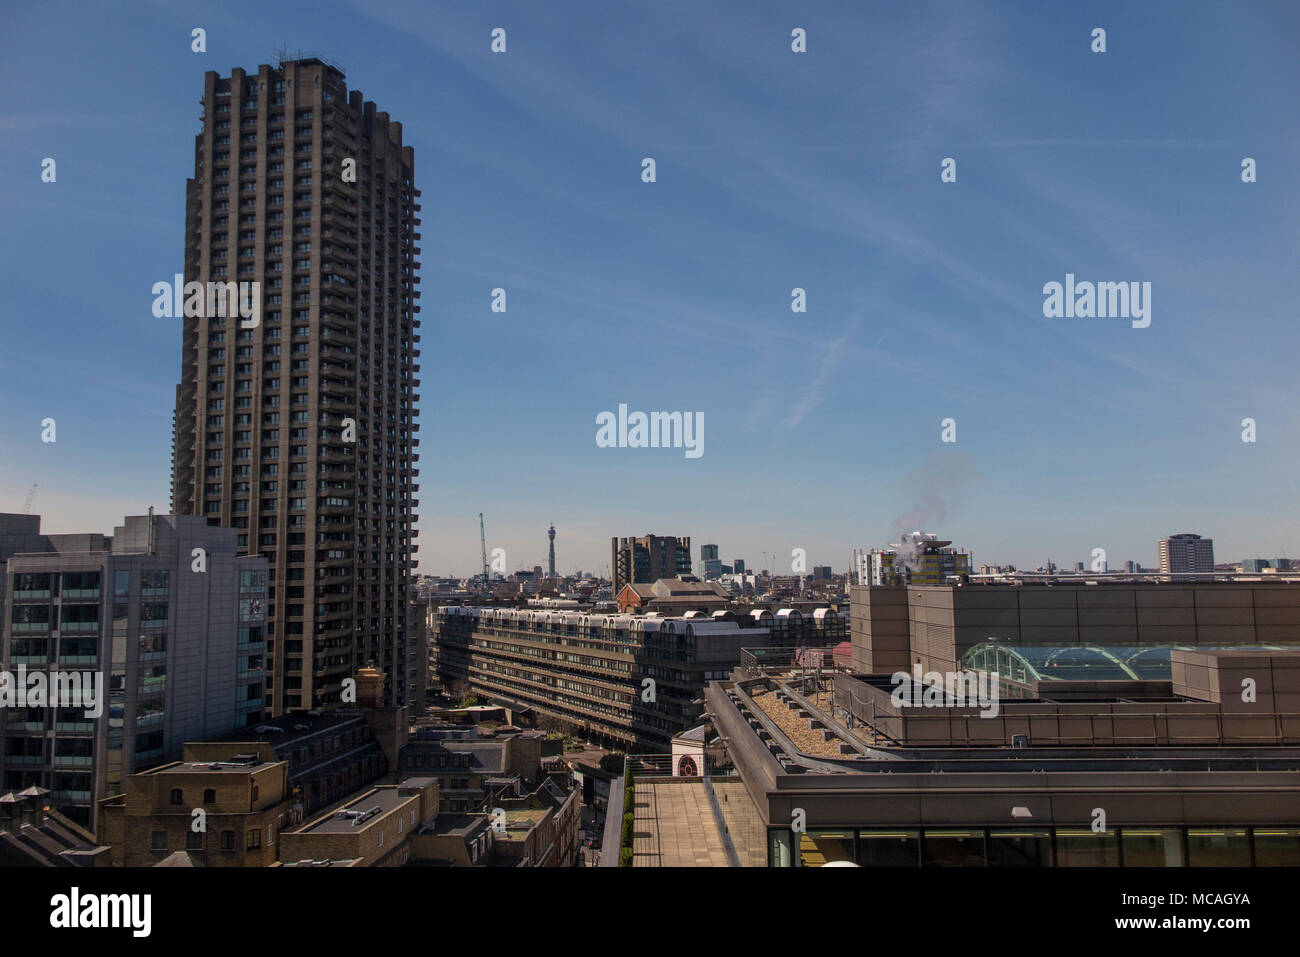 The barbican centre and London skyline, right through to the BT Tower - Stock Image